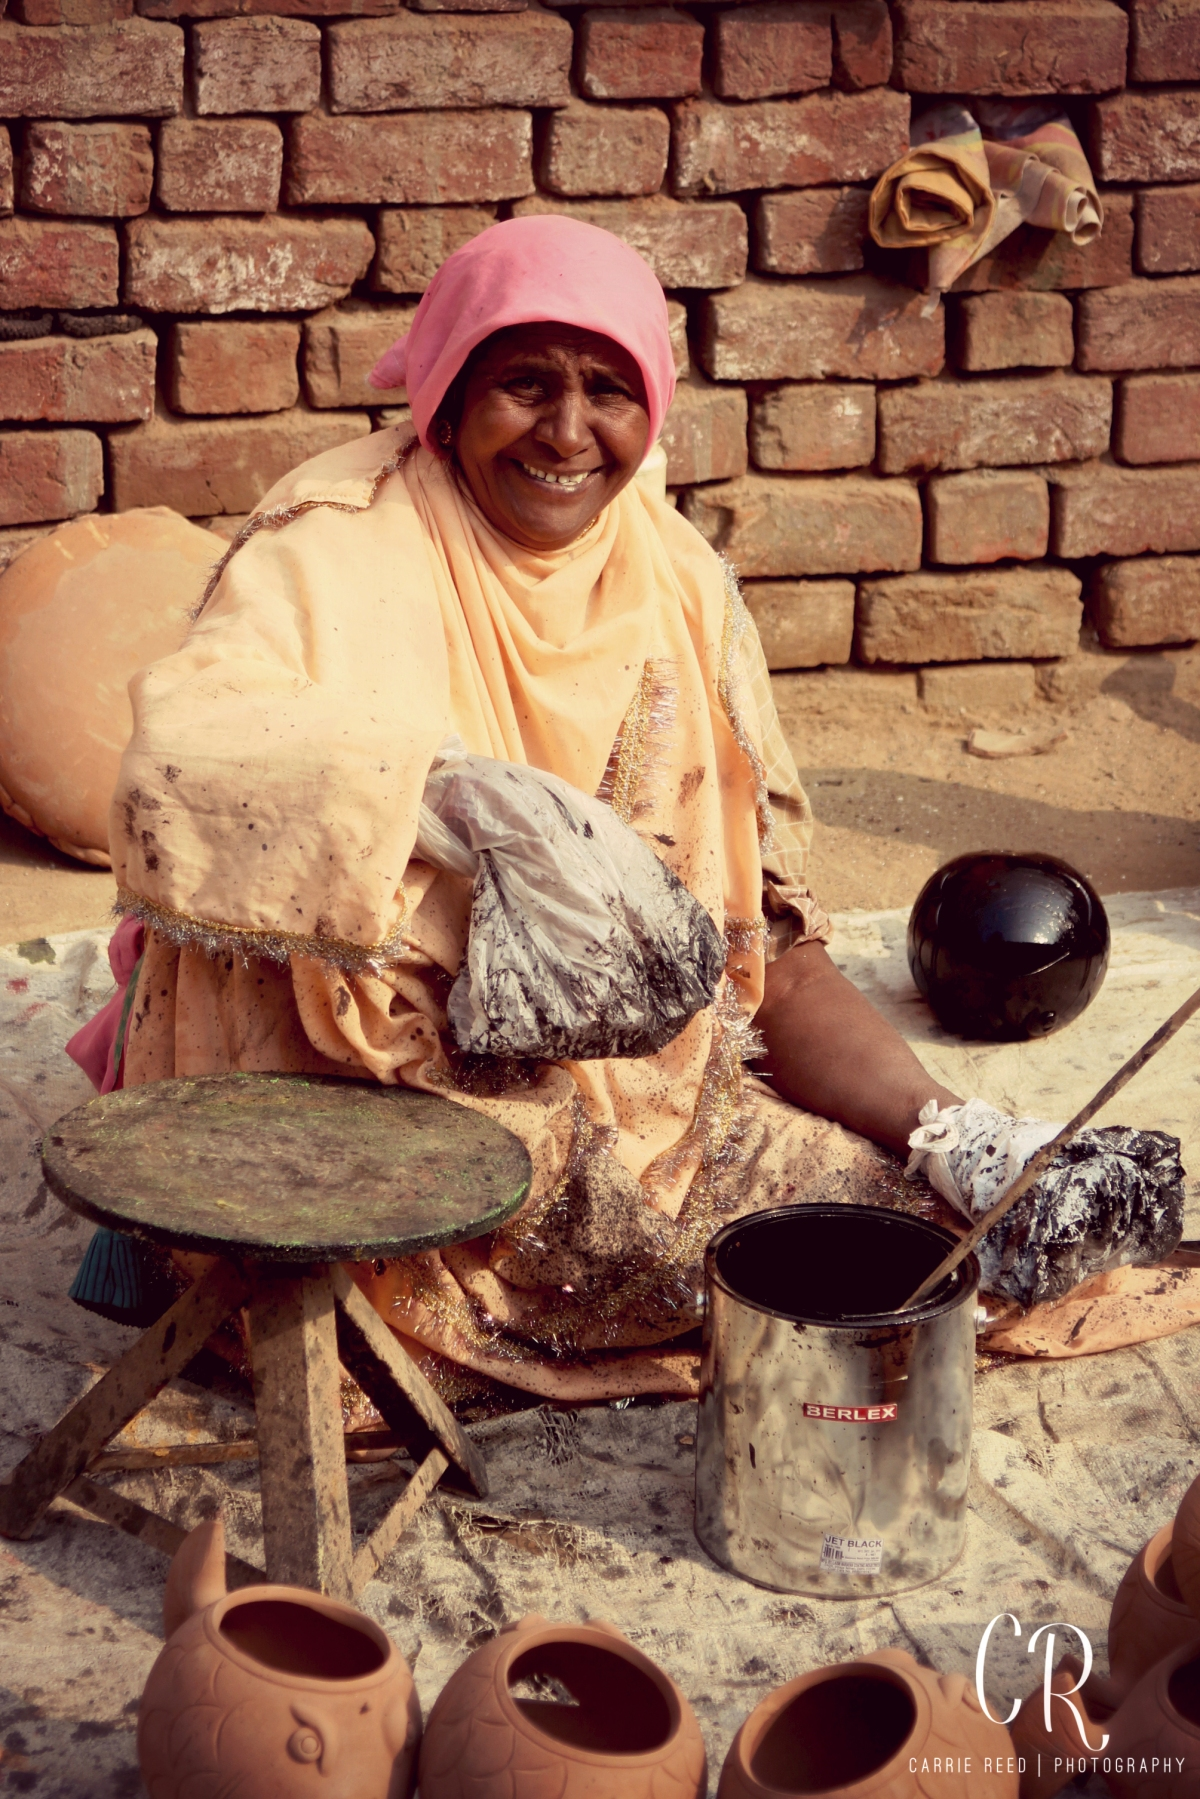 delhi_pottery-village_woman-painting_wm